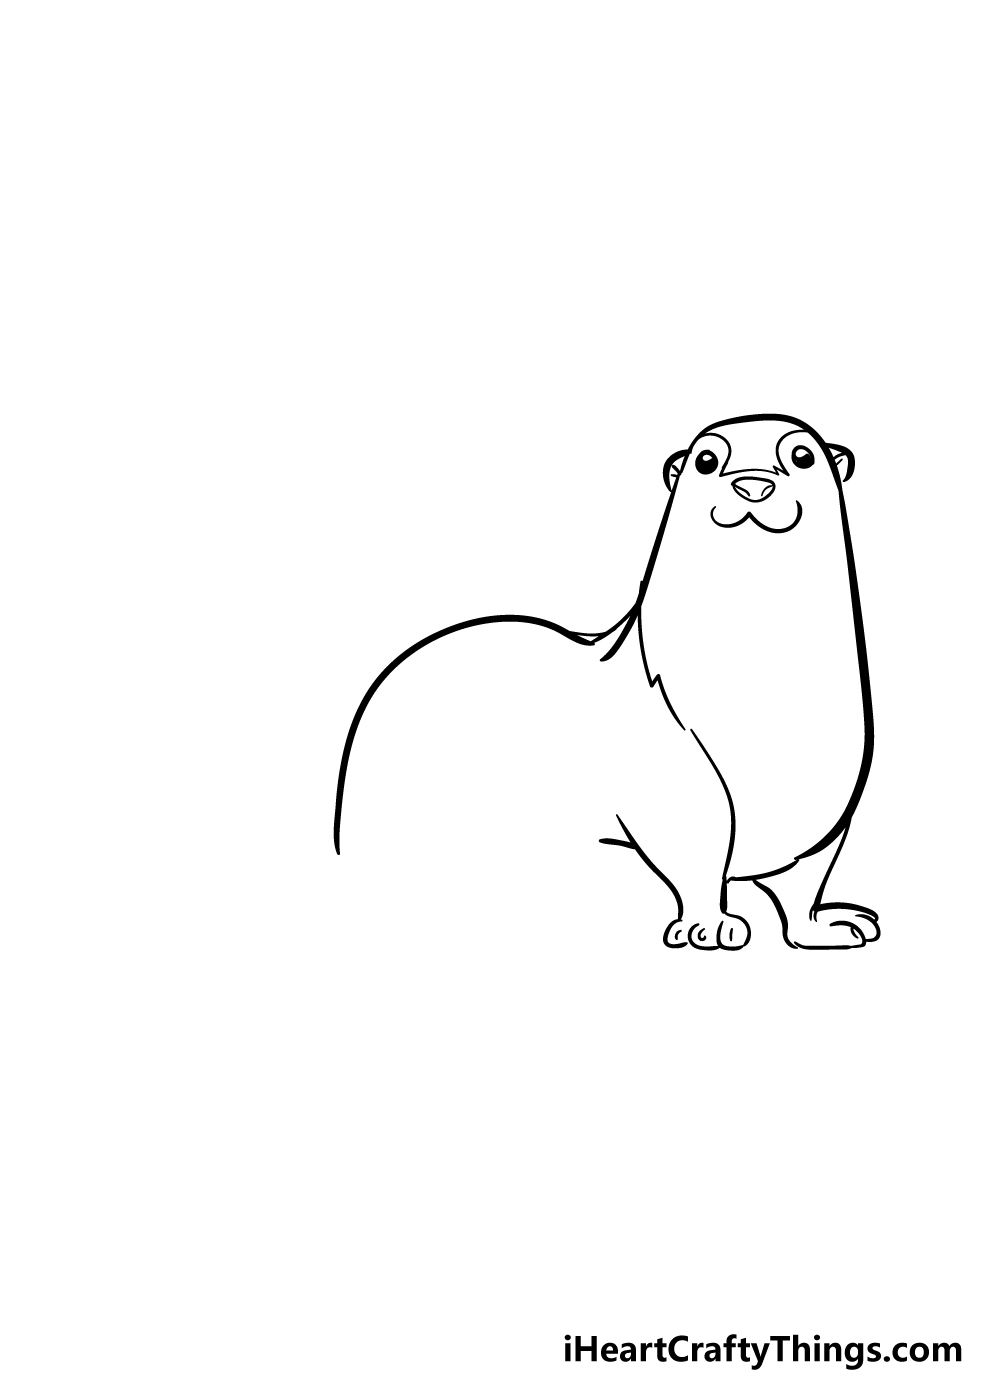 otter drawing step 3